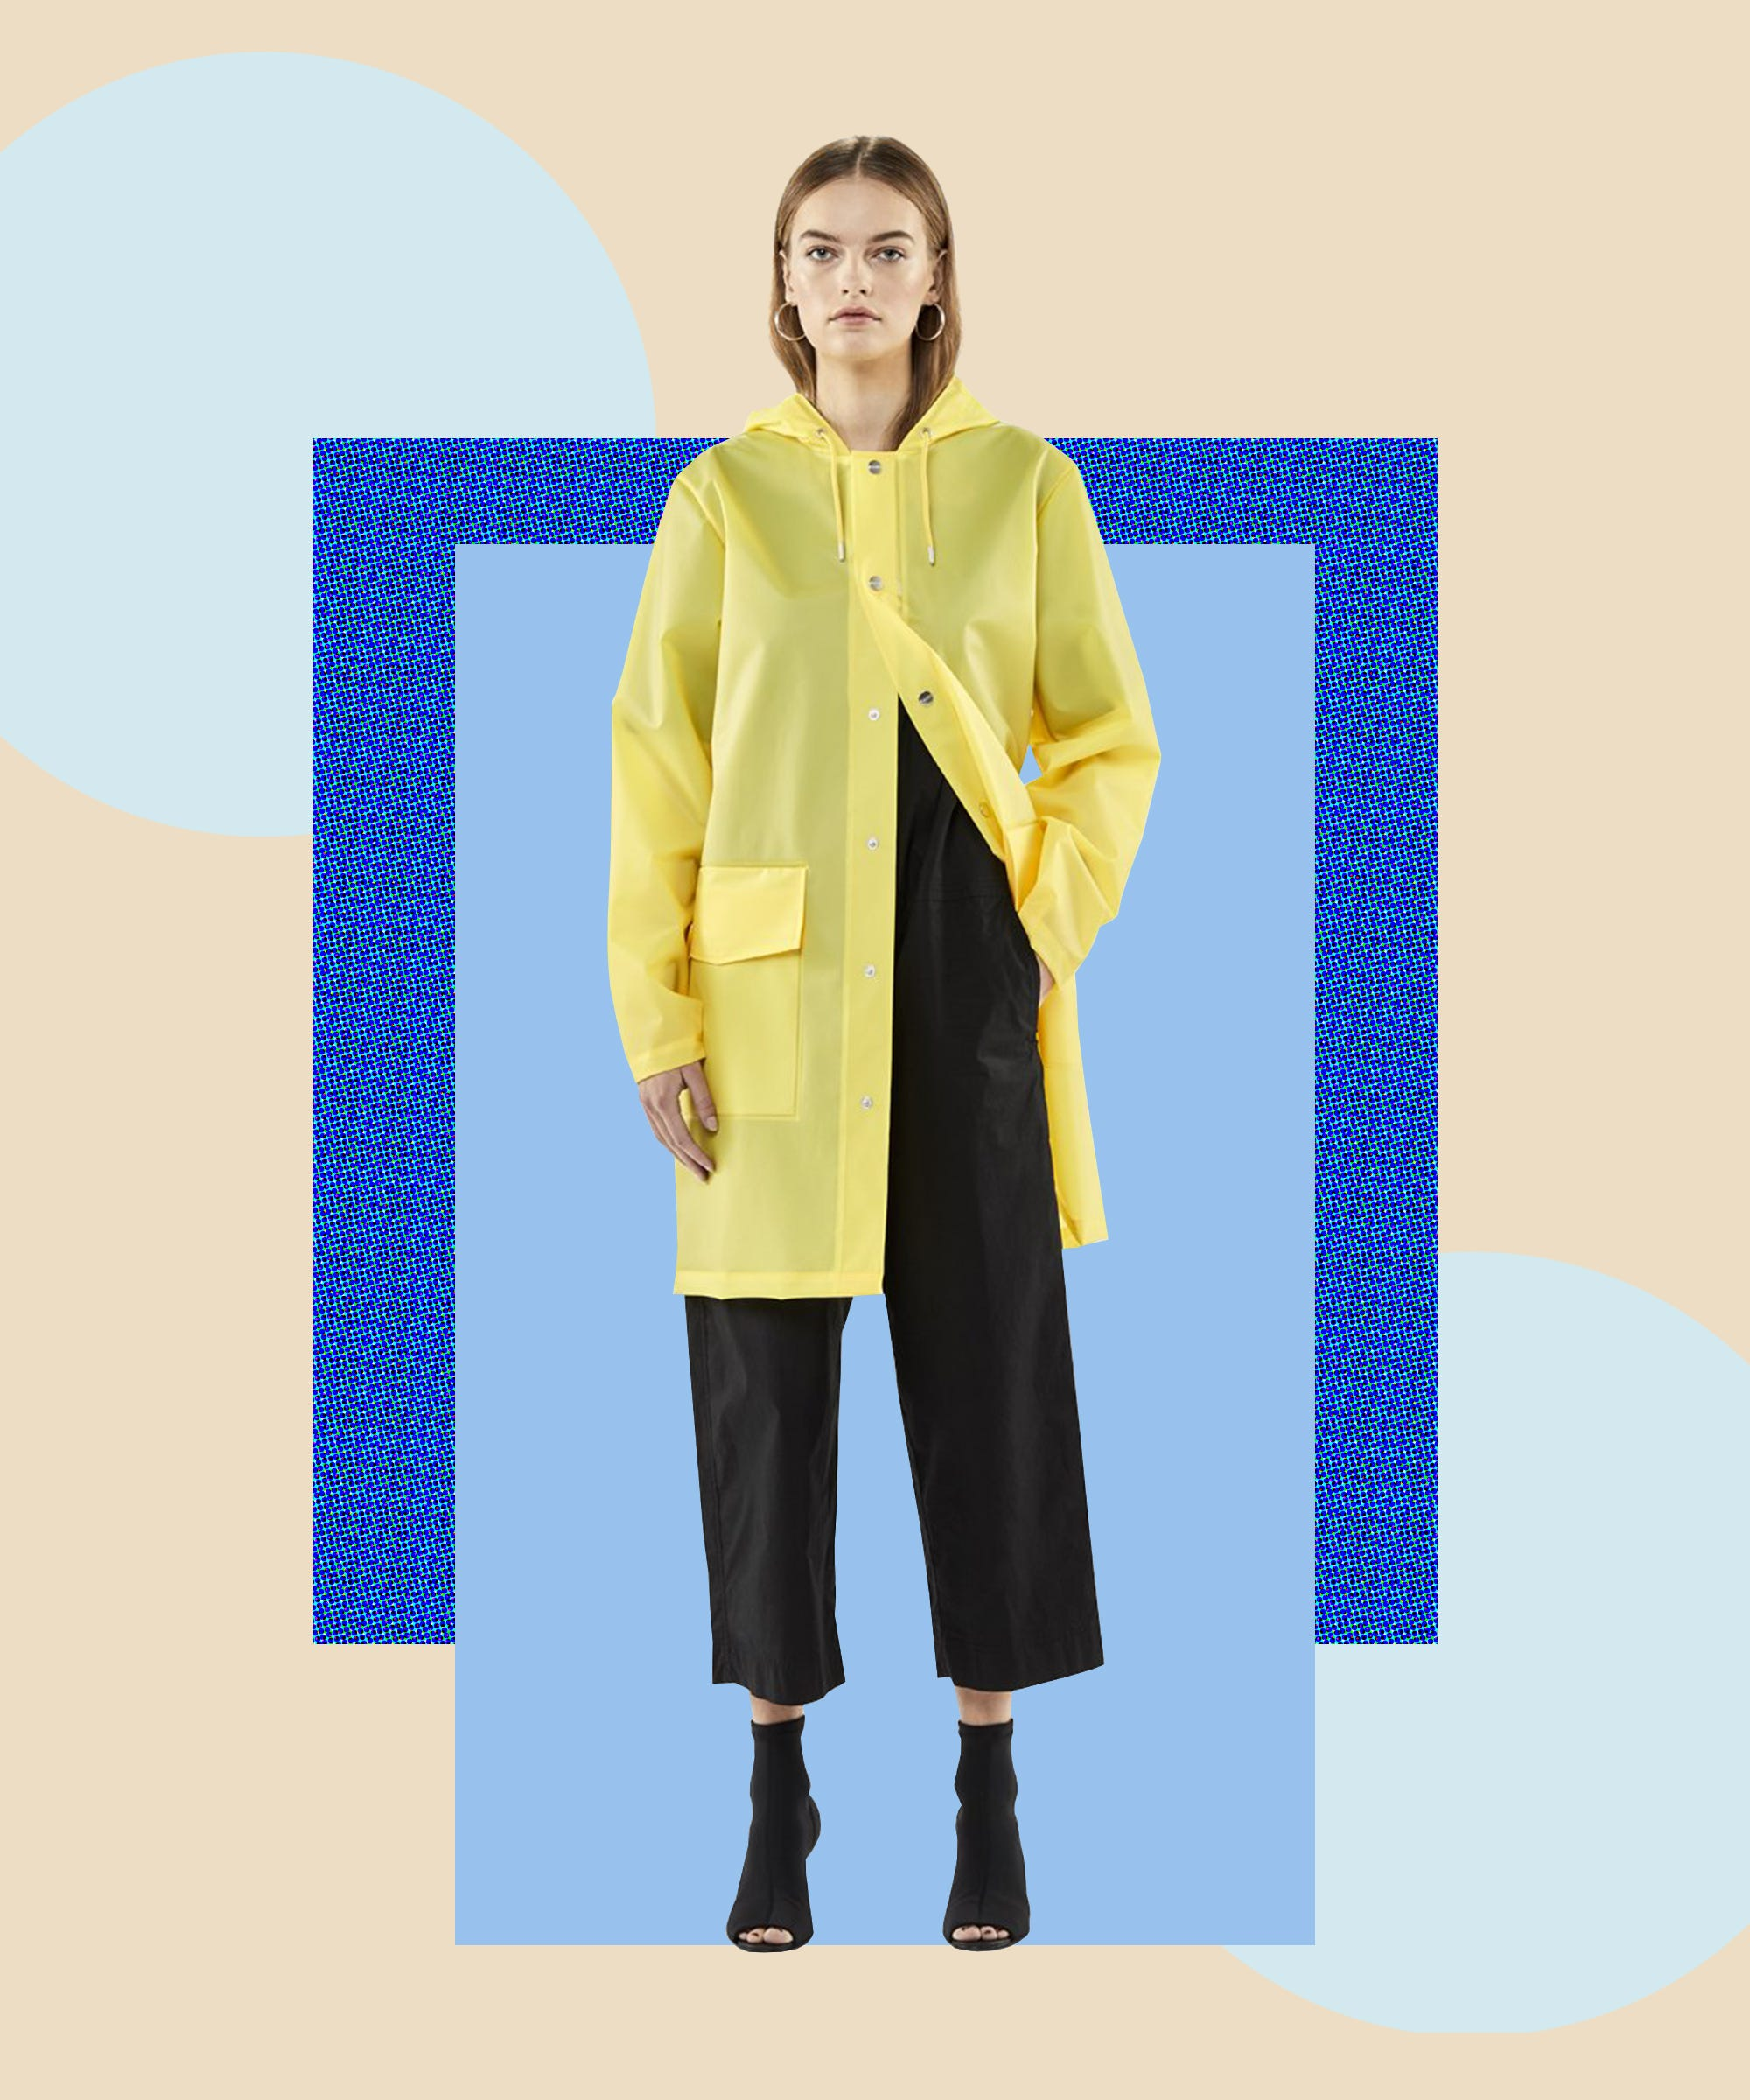 Save These 5 Outfits For A Rainy Day